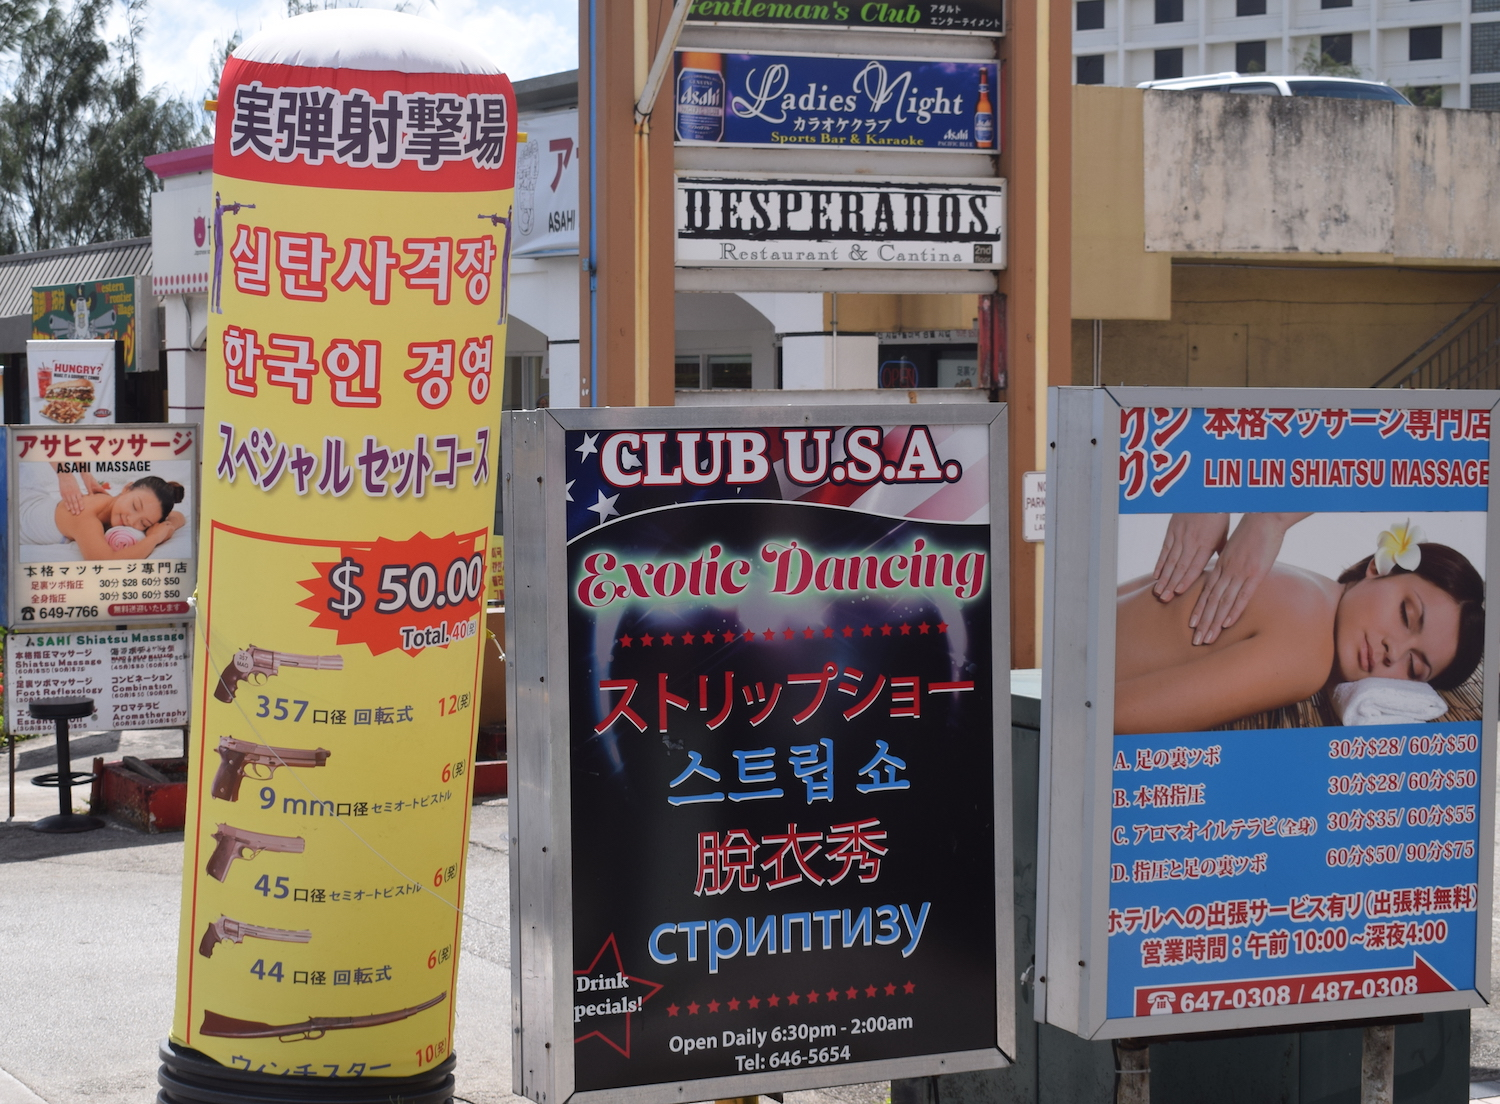 Adverts for guns and strippers in Guam